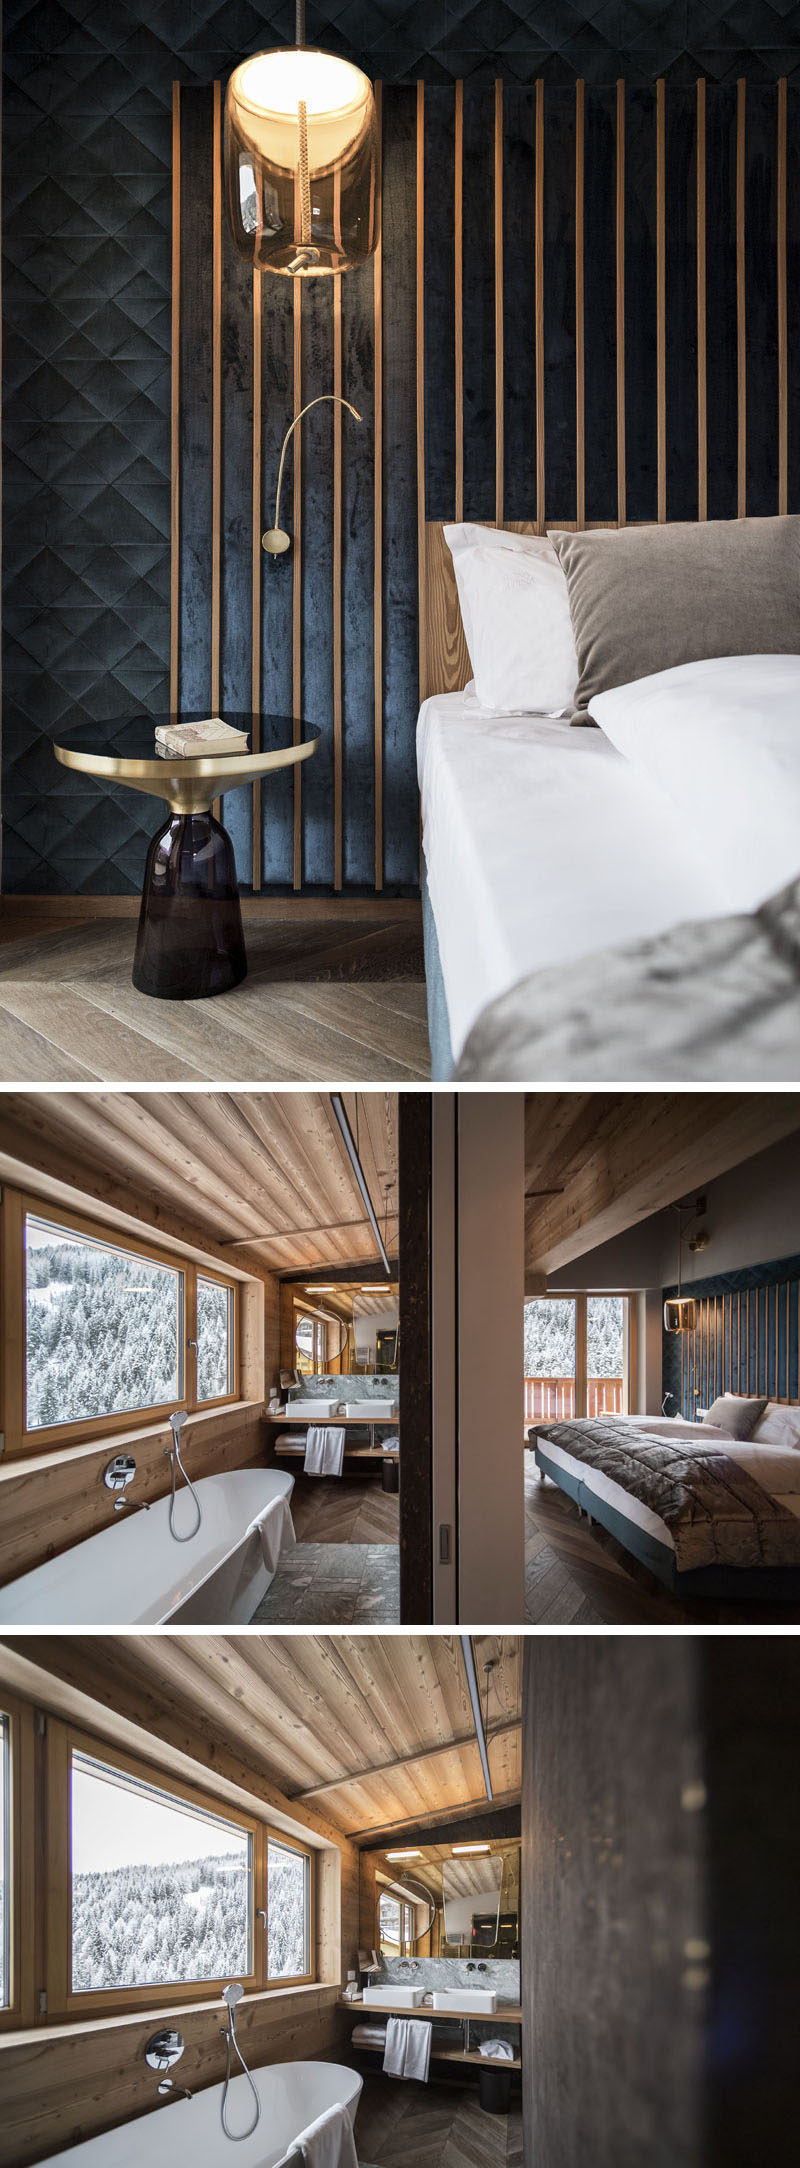 In this modern hotel suite, wood slats with padded fabric make up the bed headboard, while in the bathroom, there's a freestanding bathtub that sits below the windows. #HotelSuite #BedroomInspiration #Bathroom